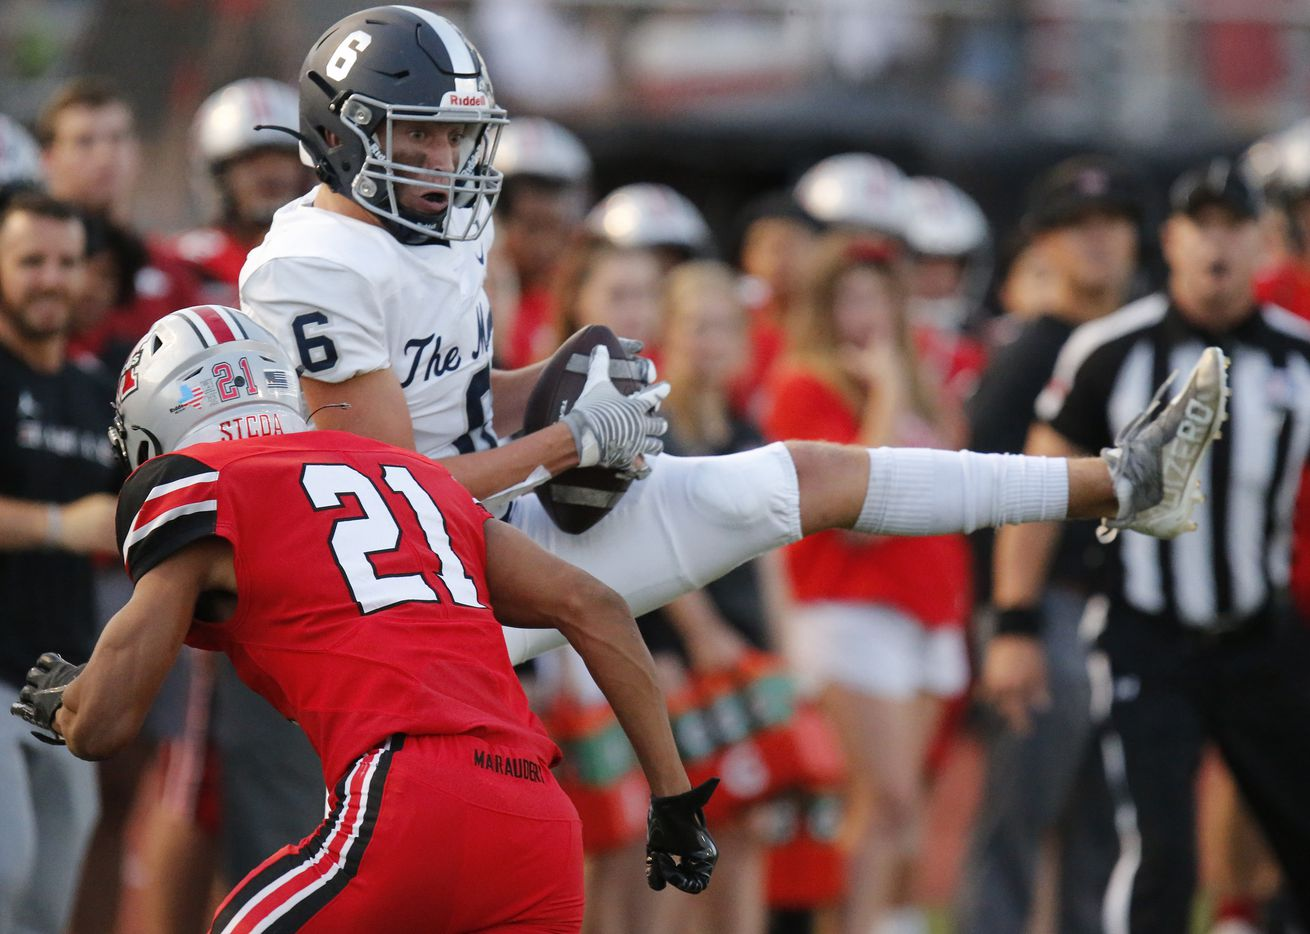 Flower Mound High School wide receiver Boston Lingenfelter (6) pulls in a pass in front of Flower Mound Marcus High School cornerback Zach Morris (21) during the first half as Flower Mound Marcus hosted Flower Mound High School in a district 6-6A football game at Marauder Stadium in Flower Mound on Friday night, September 24, 2021. (Stewart F. House/Special Contributor)